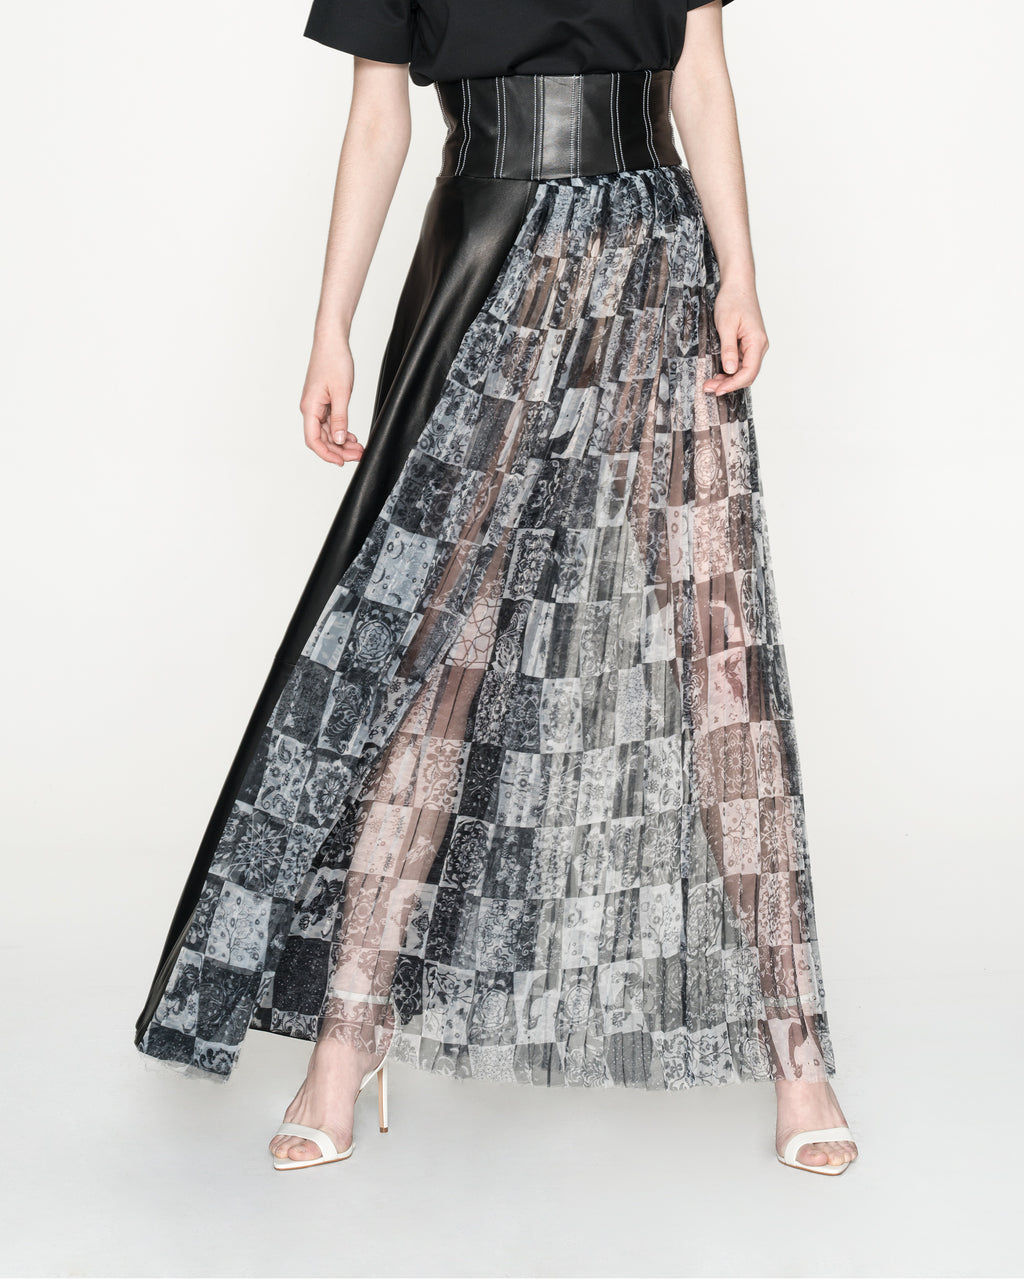 Patched Leather and Pleated Print Skirt